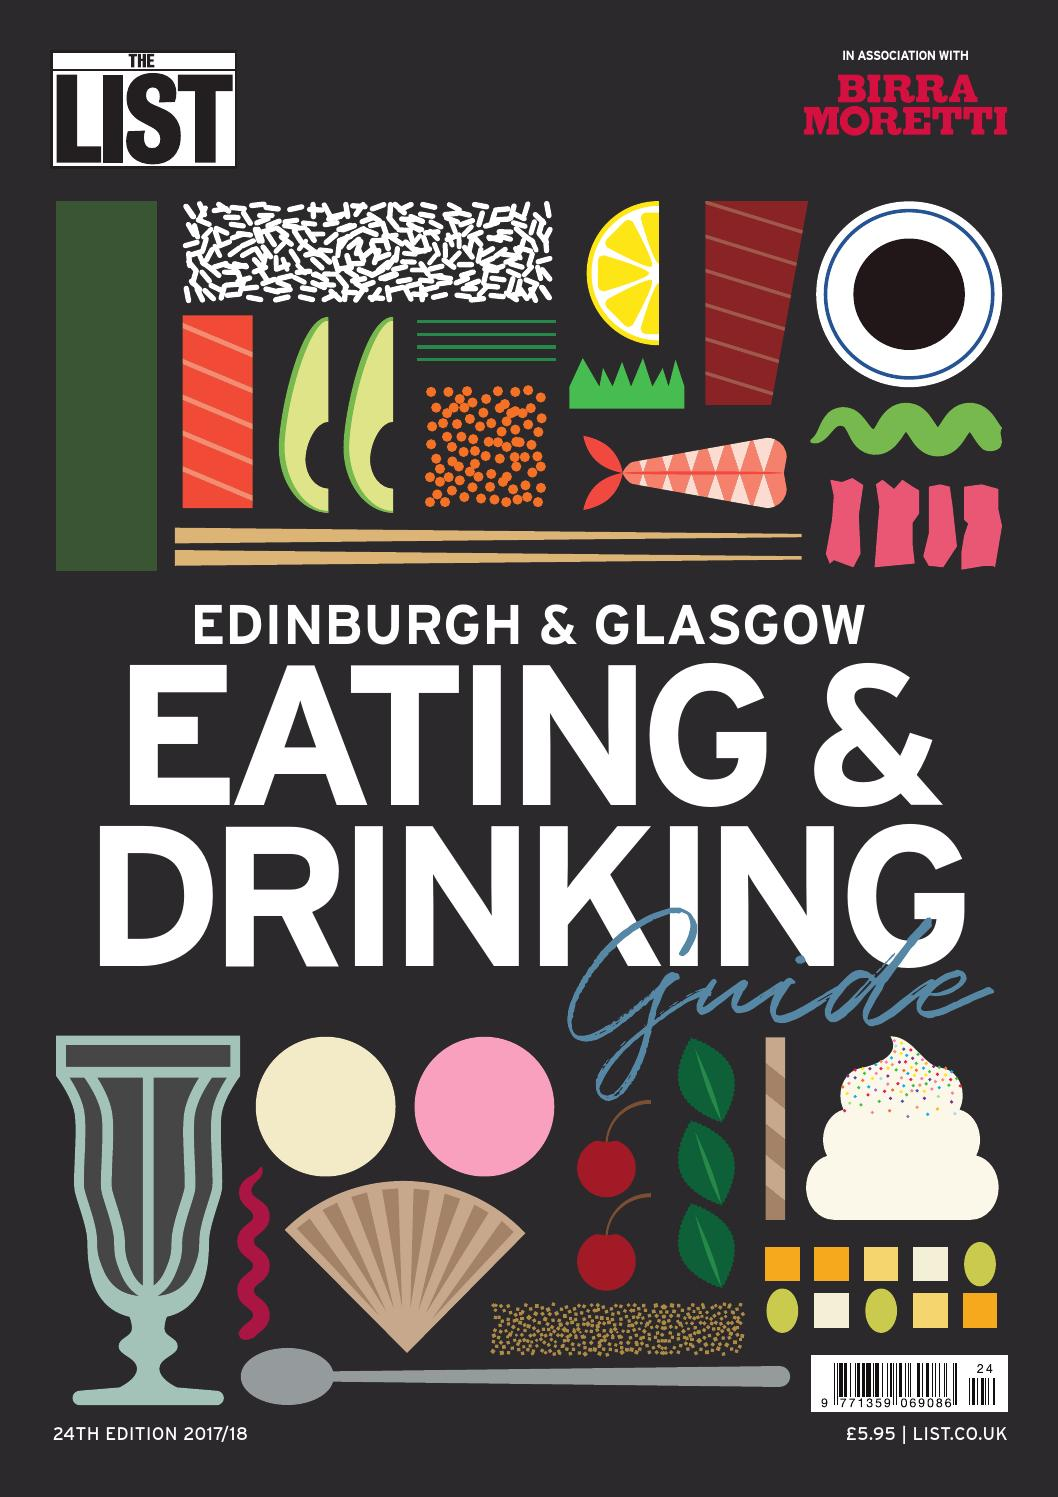 Cucina Amore North Berwick Tripadvisor Eating Drinking Guide 2017 By The List Ltd Issuu